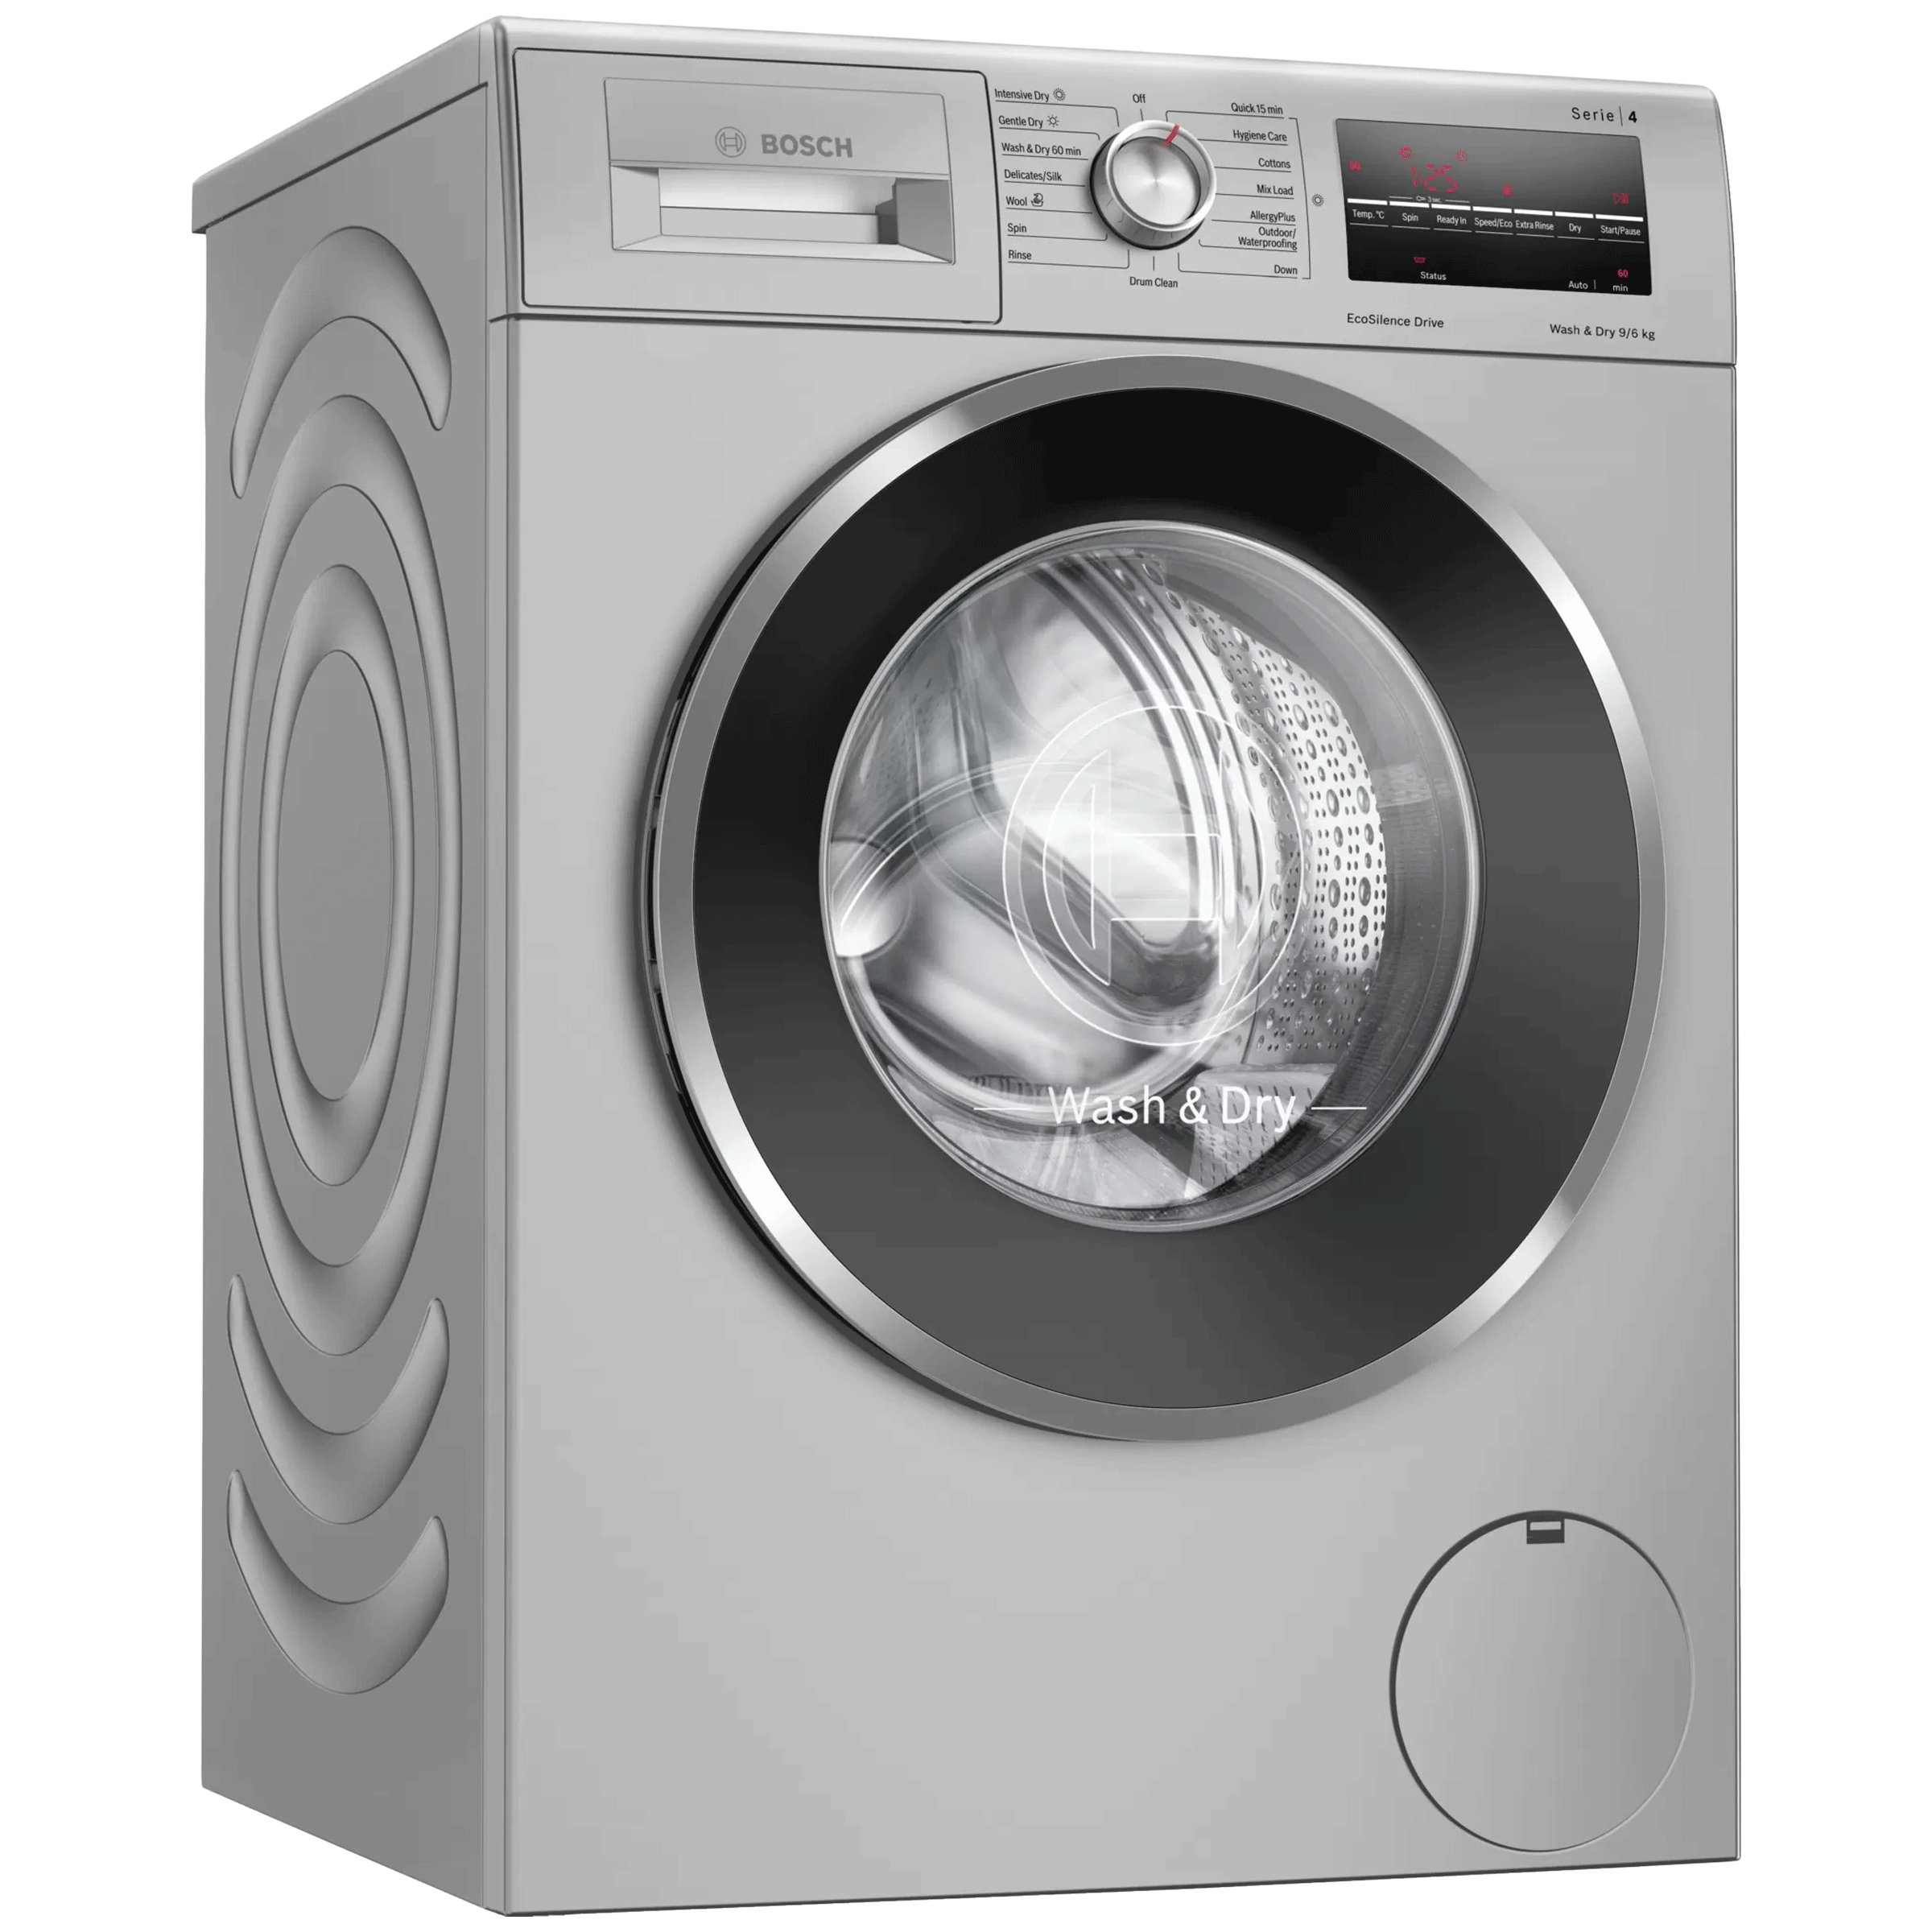 Bosch Serie 6 9 kg/6 kg 5 Star Fully Automatic Front Load Washer Dryer Combo (VarioPerfect Wash Technique, WNA14408IN, Silver)_1